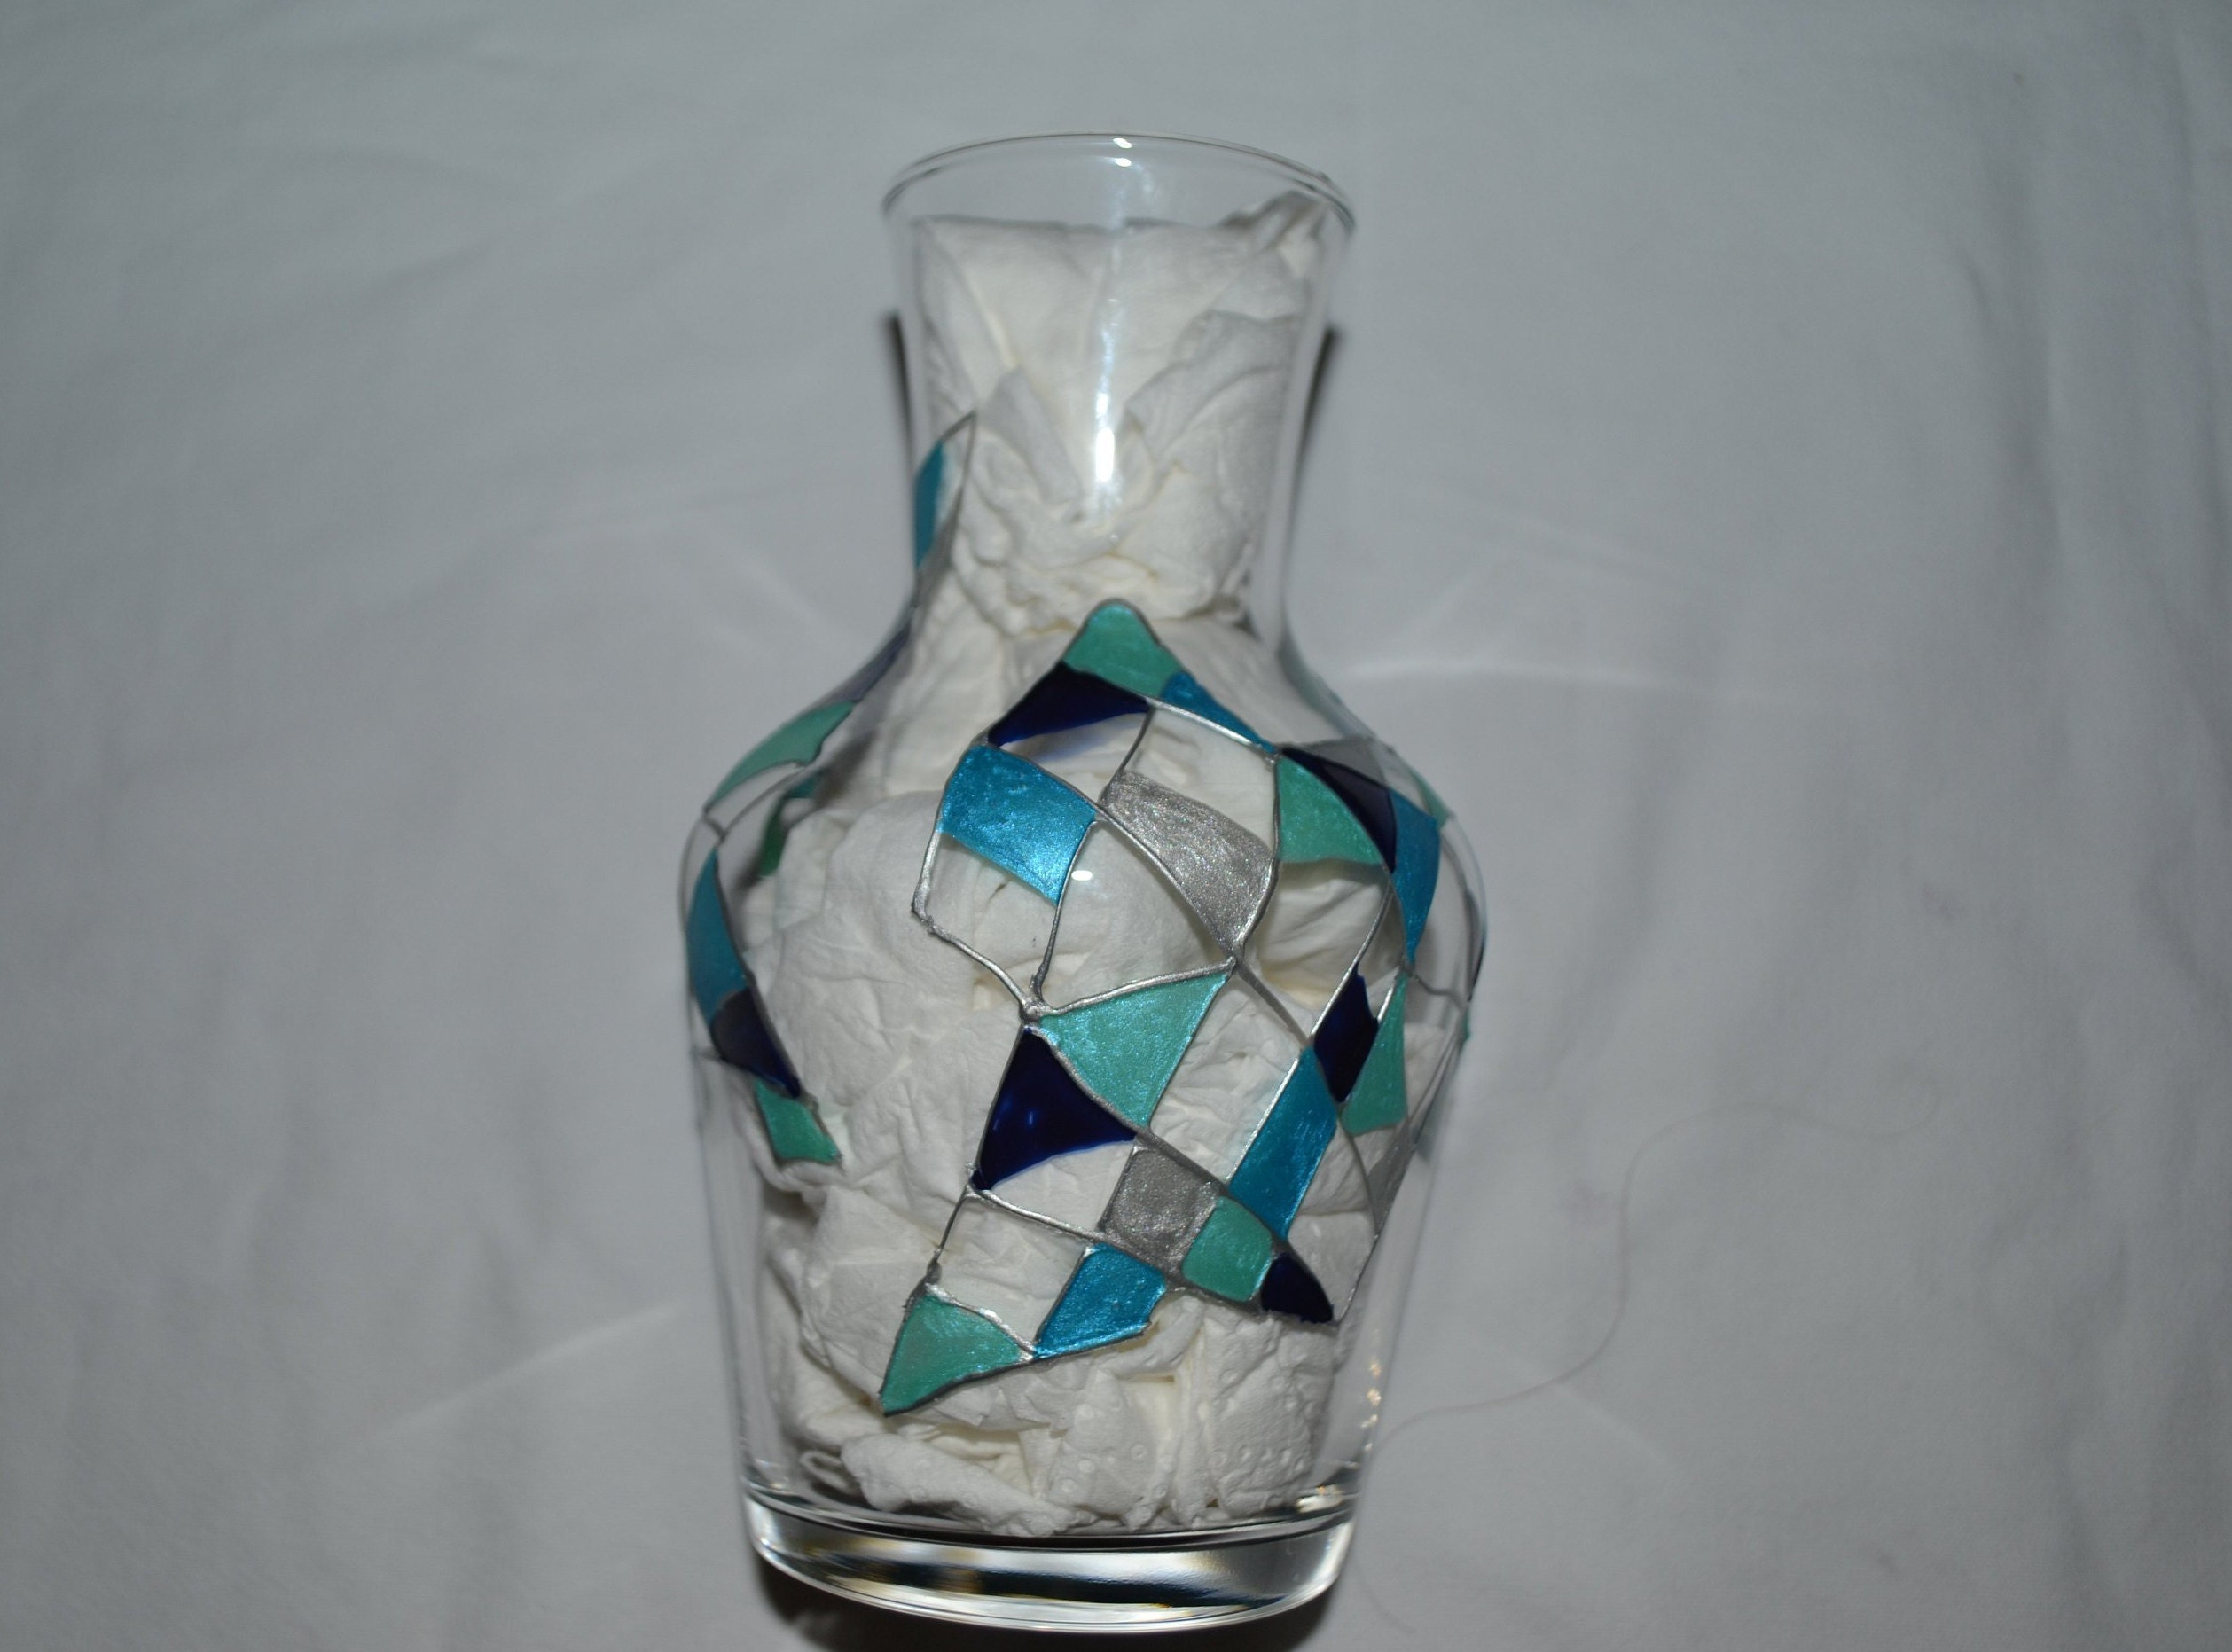 Idee Deco Pour Grand Vase Transparent decanter, painted glass vase, graphic patterns, turquoise blue, stained  glass, color, decorated pitcher vase vase blue vase, glass opaleisis  painting